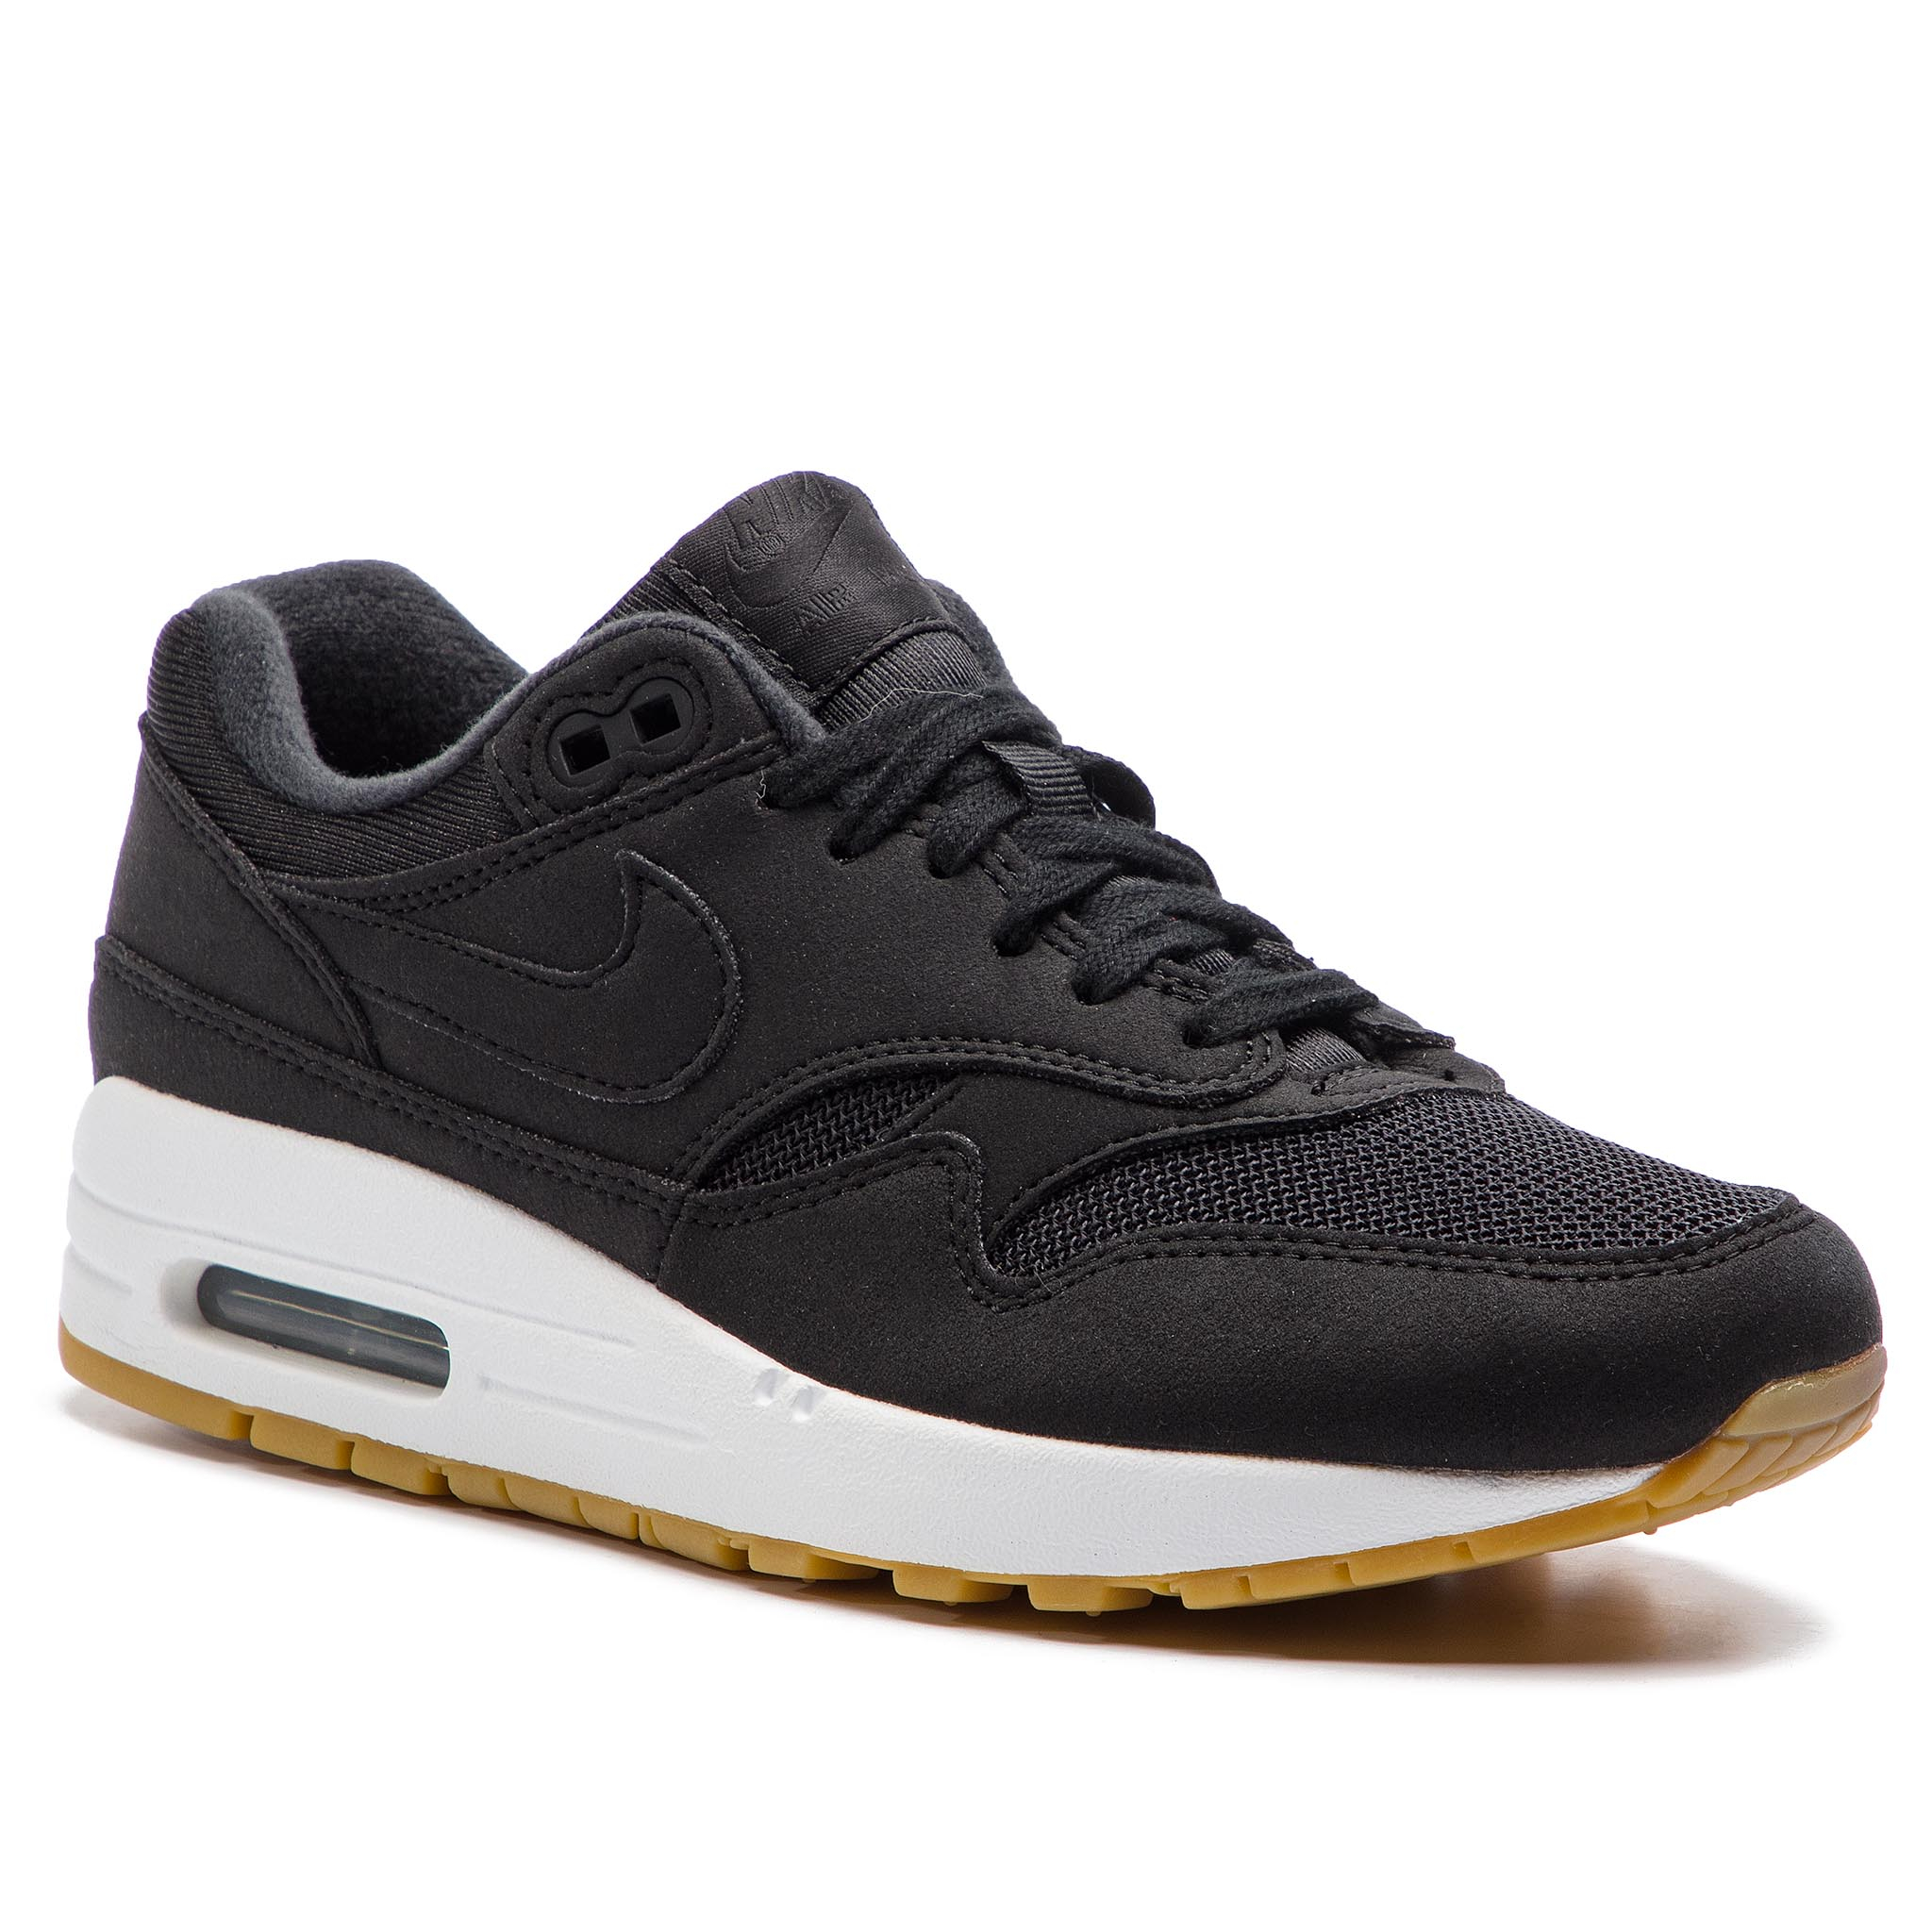 check out f9470 5cb1f Pantofi NIKE Air Max 1 319986 037 Black Black Gum Light Brown